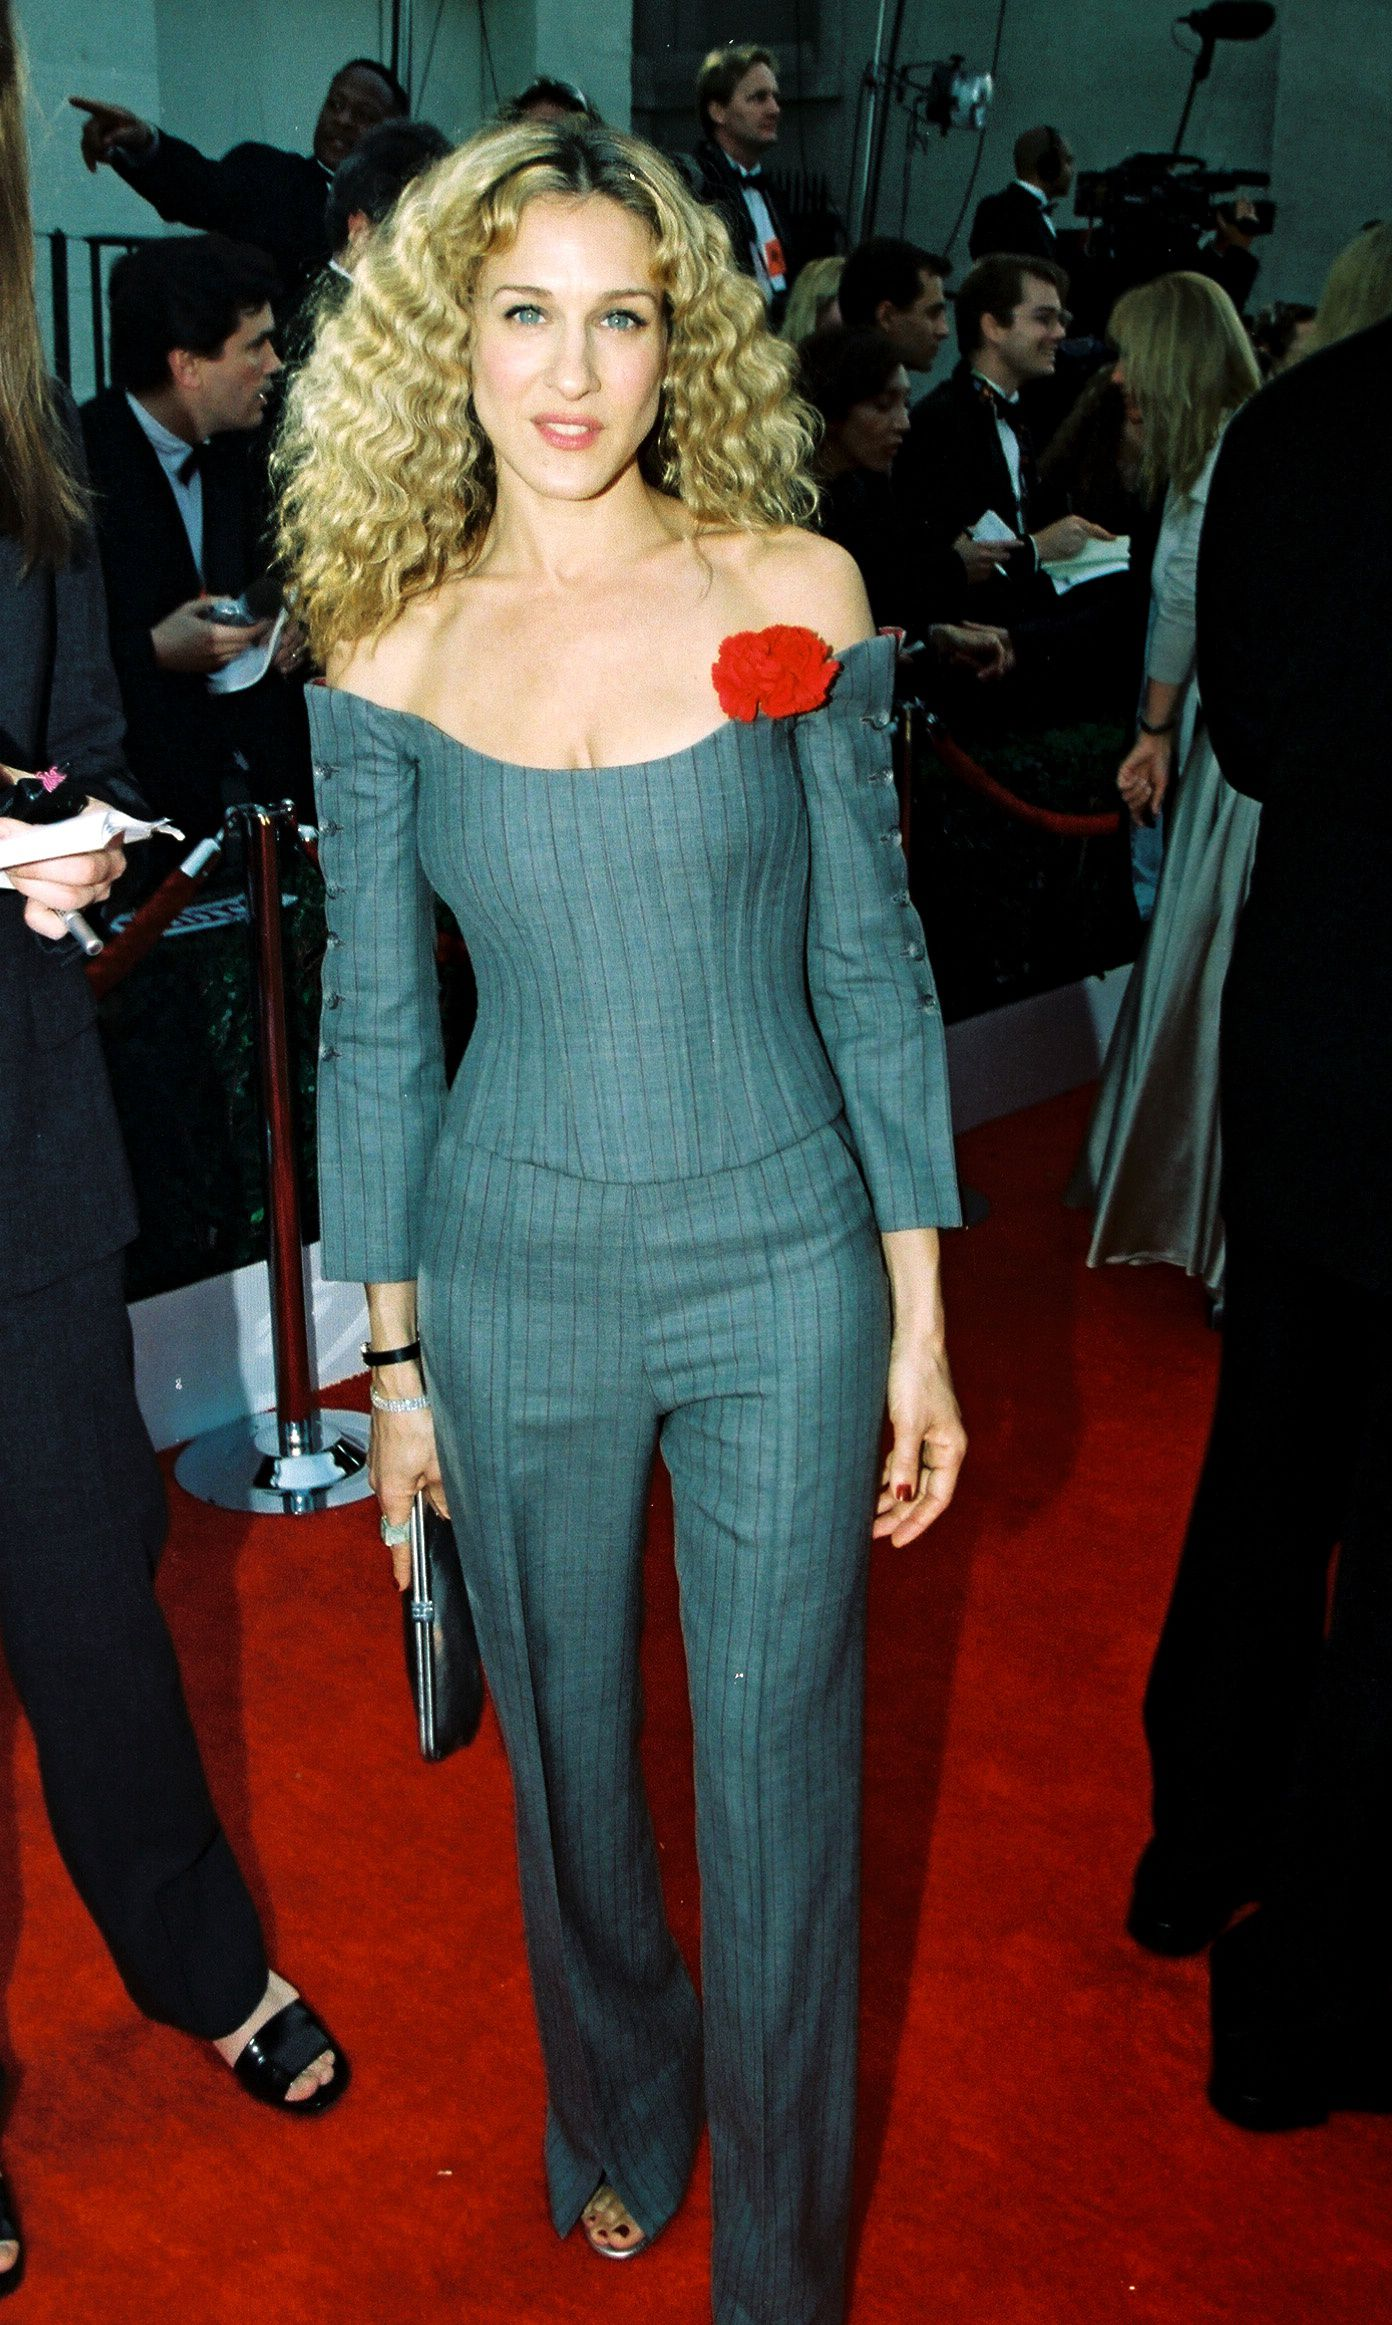 Sarah Jessica Parker's Style Through the Years